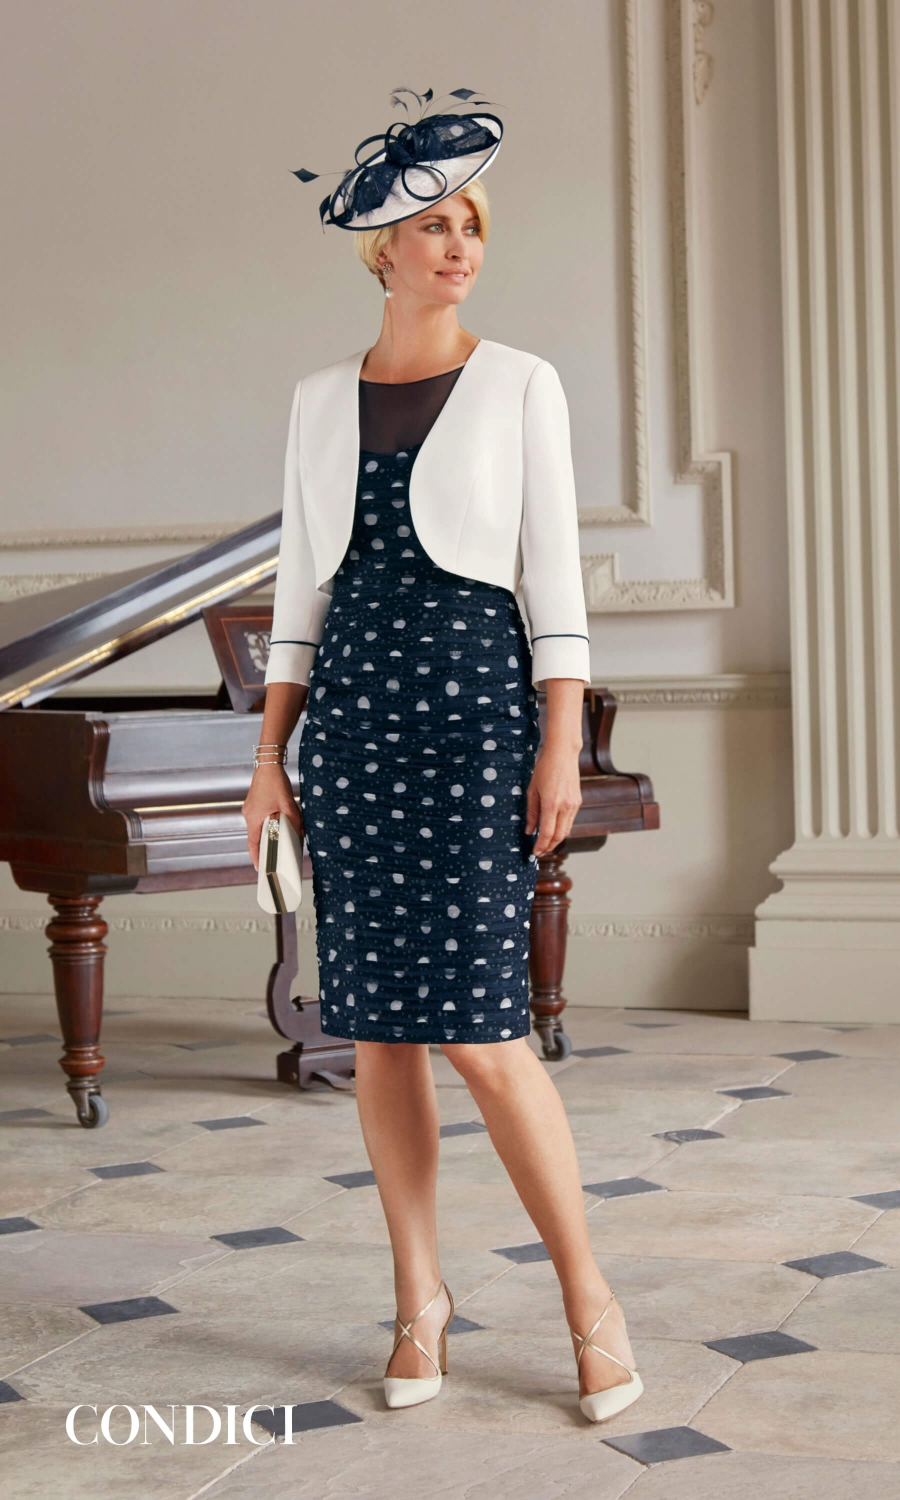 8700-condici-70932-cream-navy-mother-of-the-bride-outfit-6000874-0.jpg